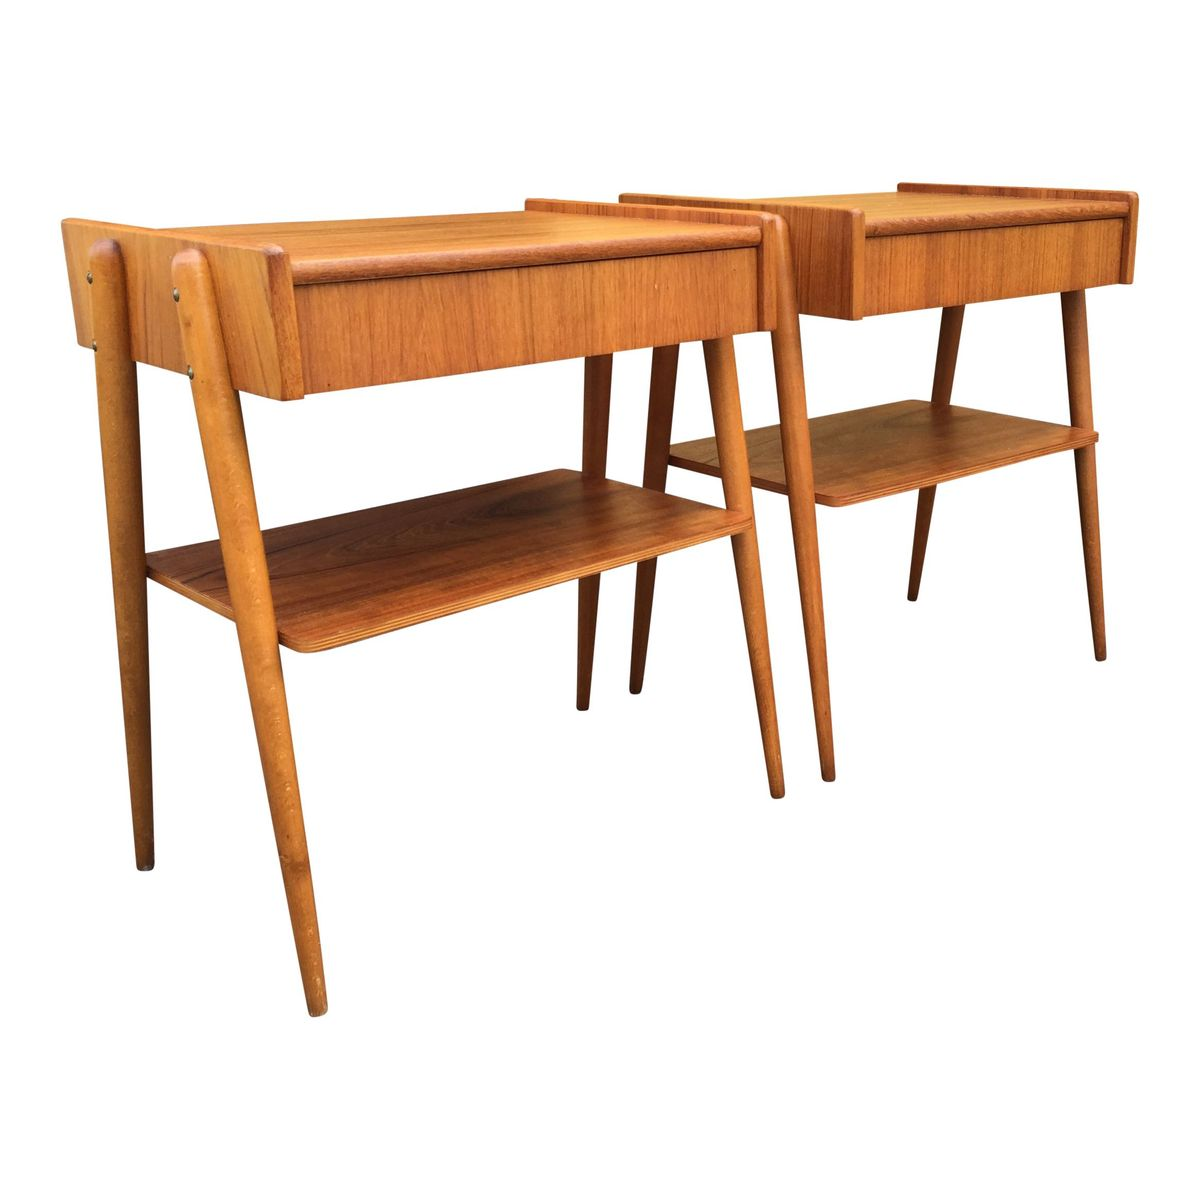 Danish Bedside Table Danish Teak Bedside Tables Set Of 2 For Sale At Pamono